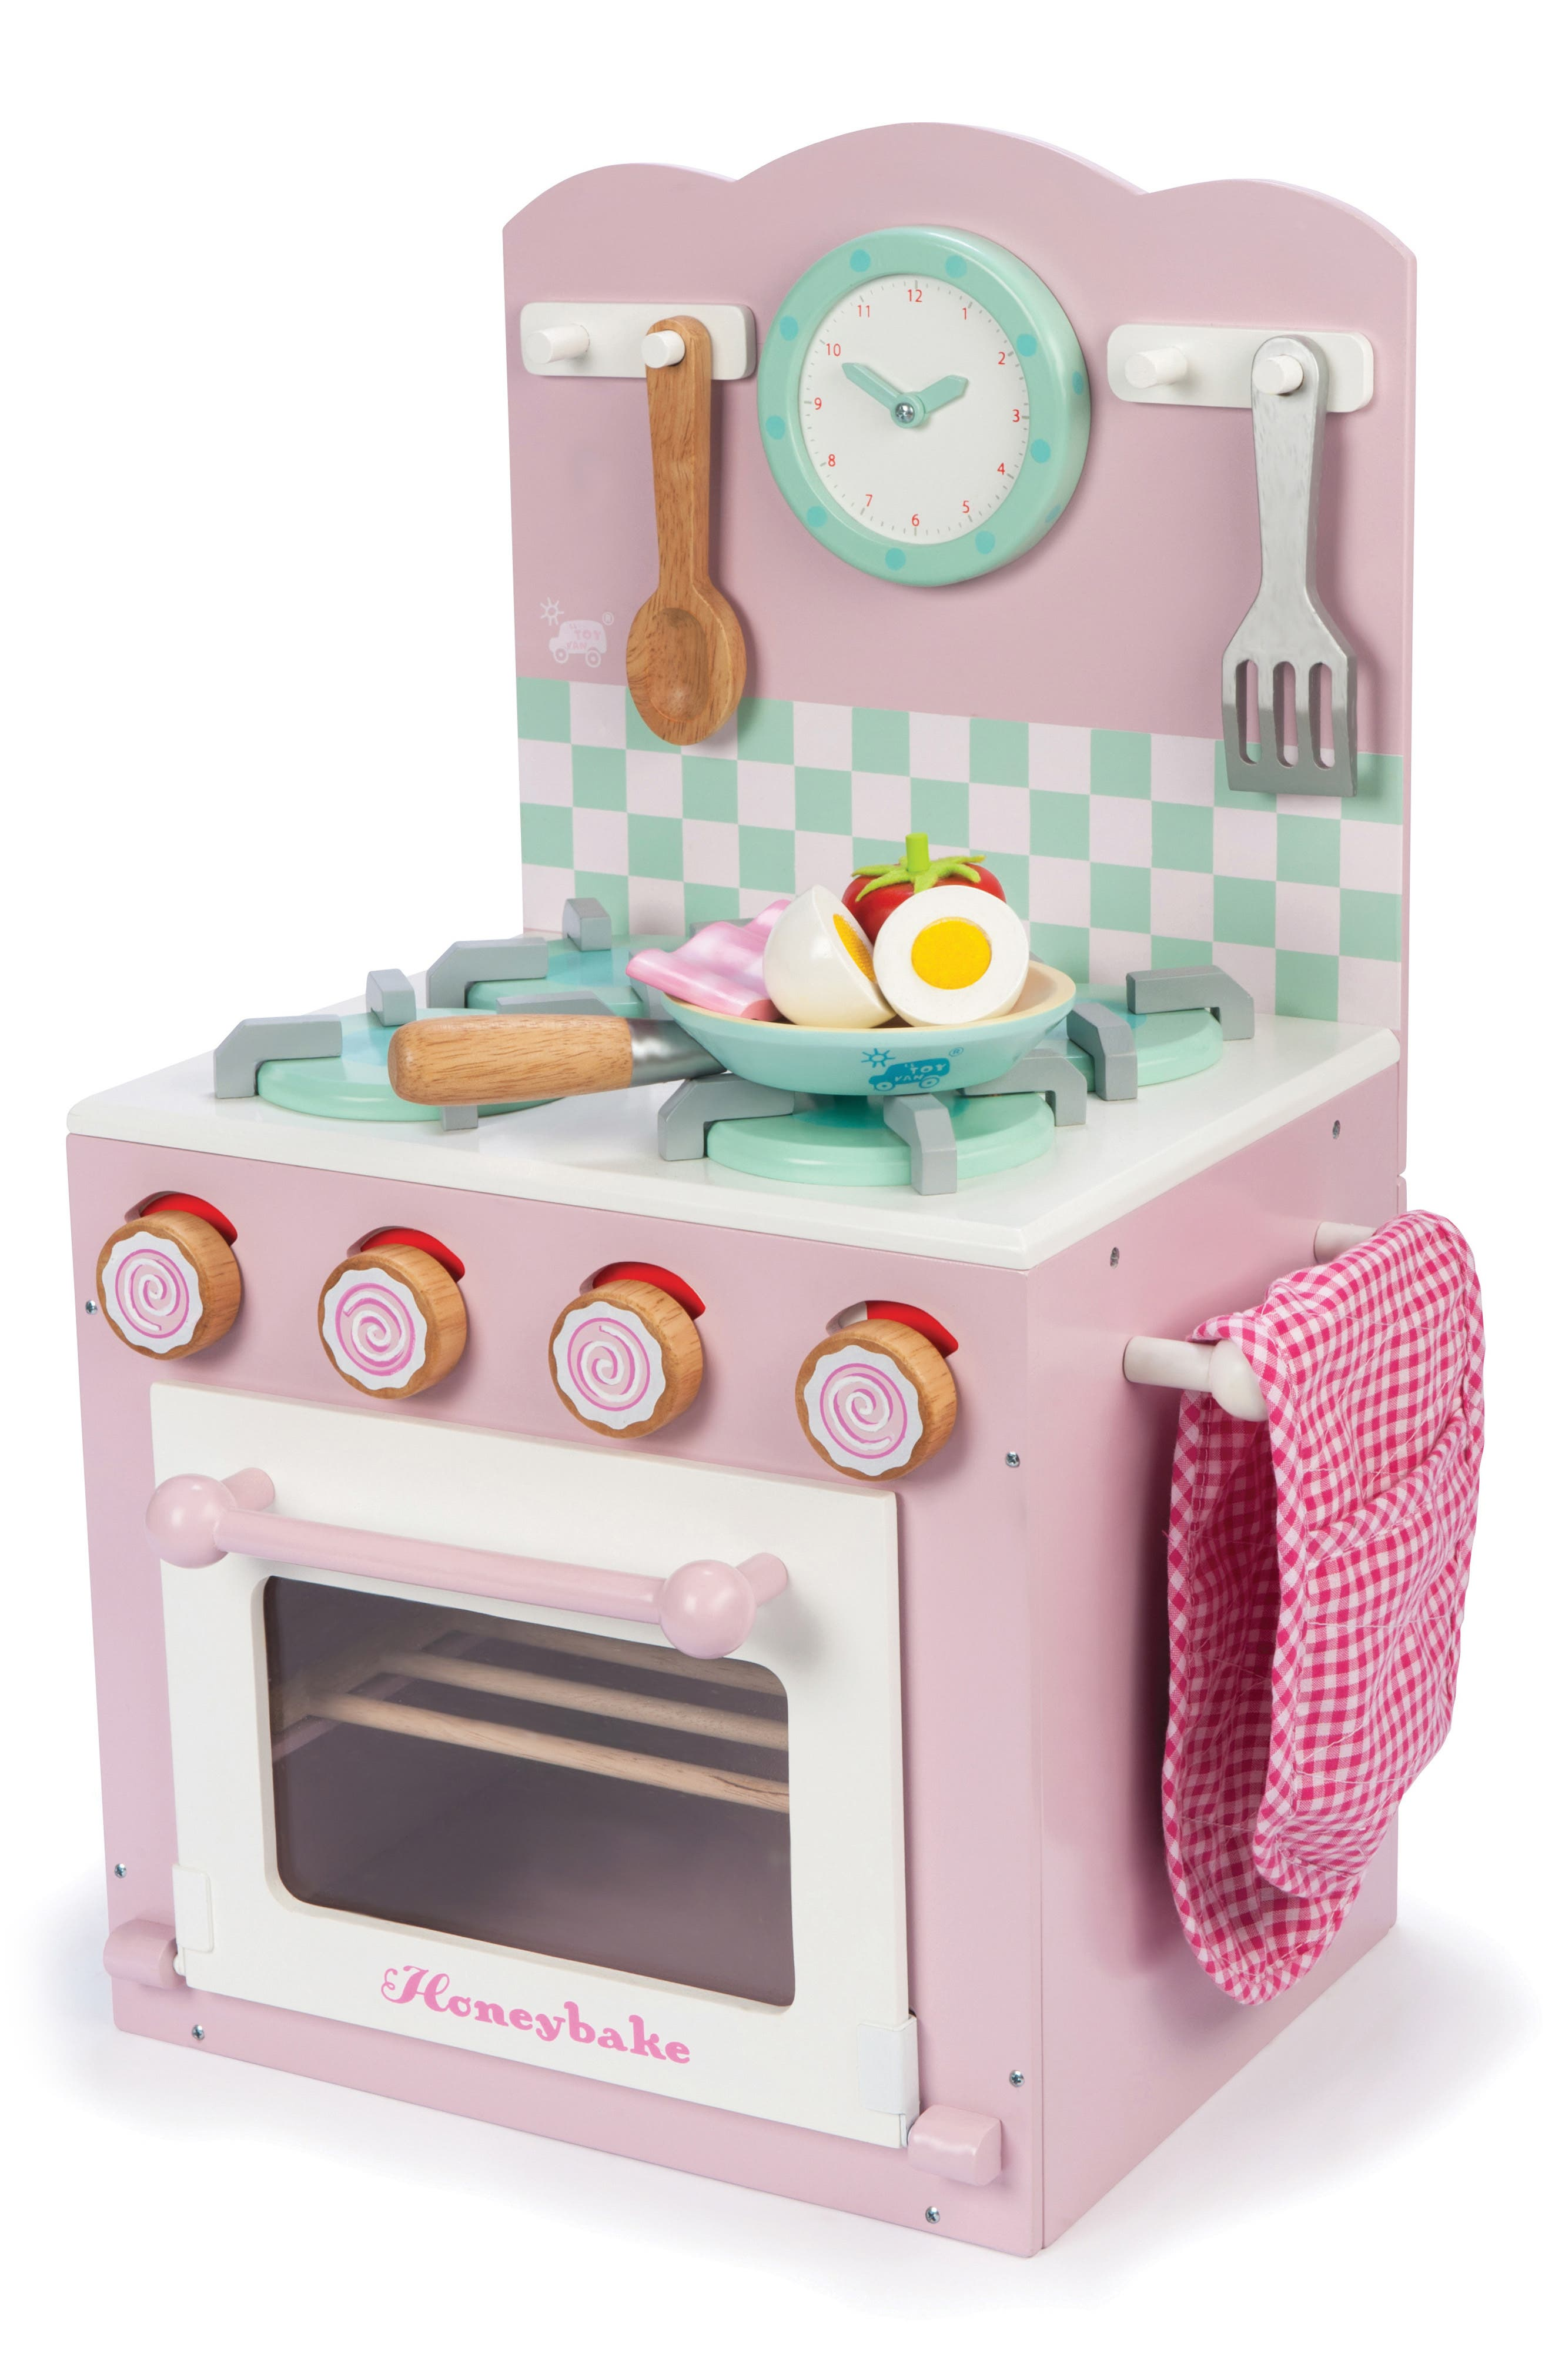 This adorable set is perfect for hours of hands-on imaginative play where kids can cook and pretend with exactly what they\\\'d see in the real kitchen. Style Name: Le Toy Van Oven Kitchen Set. Style Number: 6124950. Available in stores.